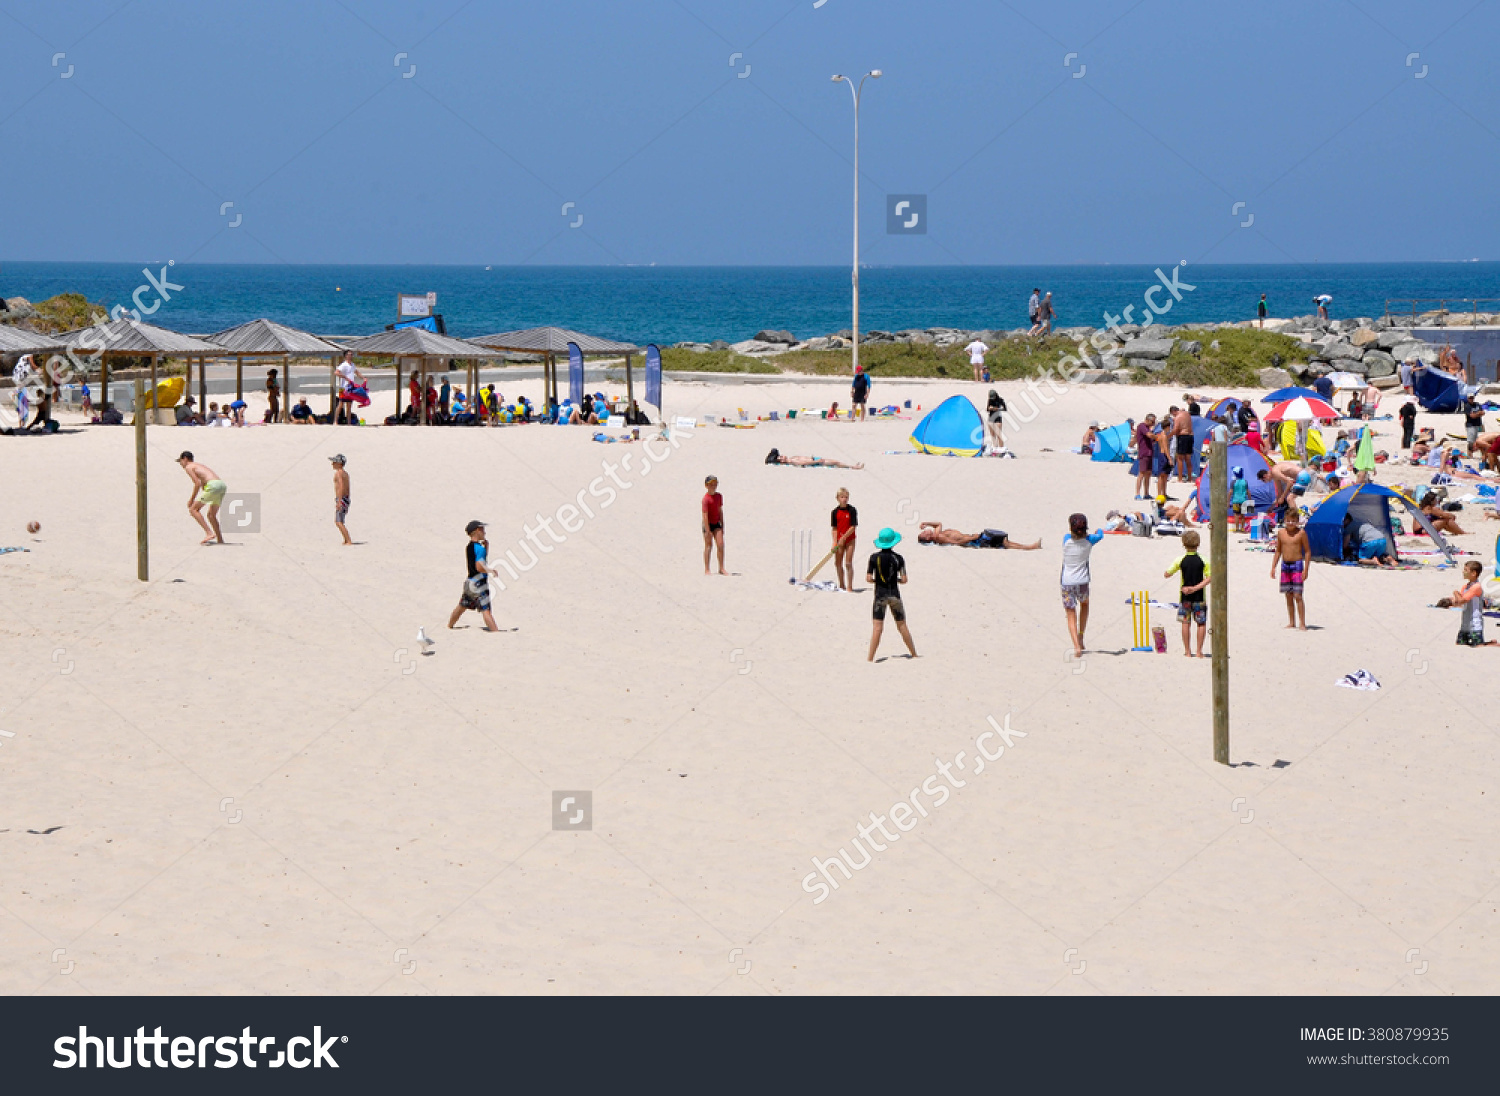 Kids Playing Cricket At Cottesloe Beach In Western Australia/Beach.